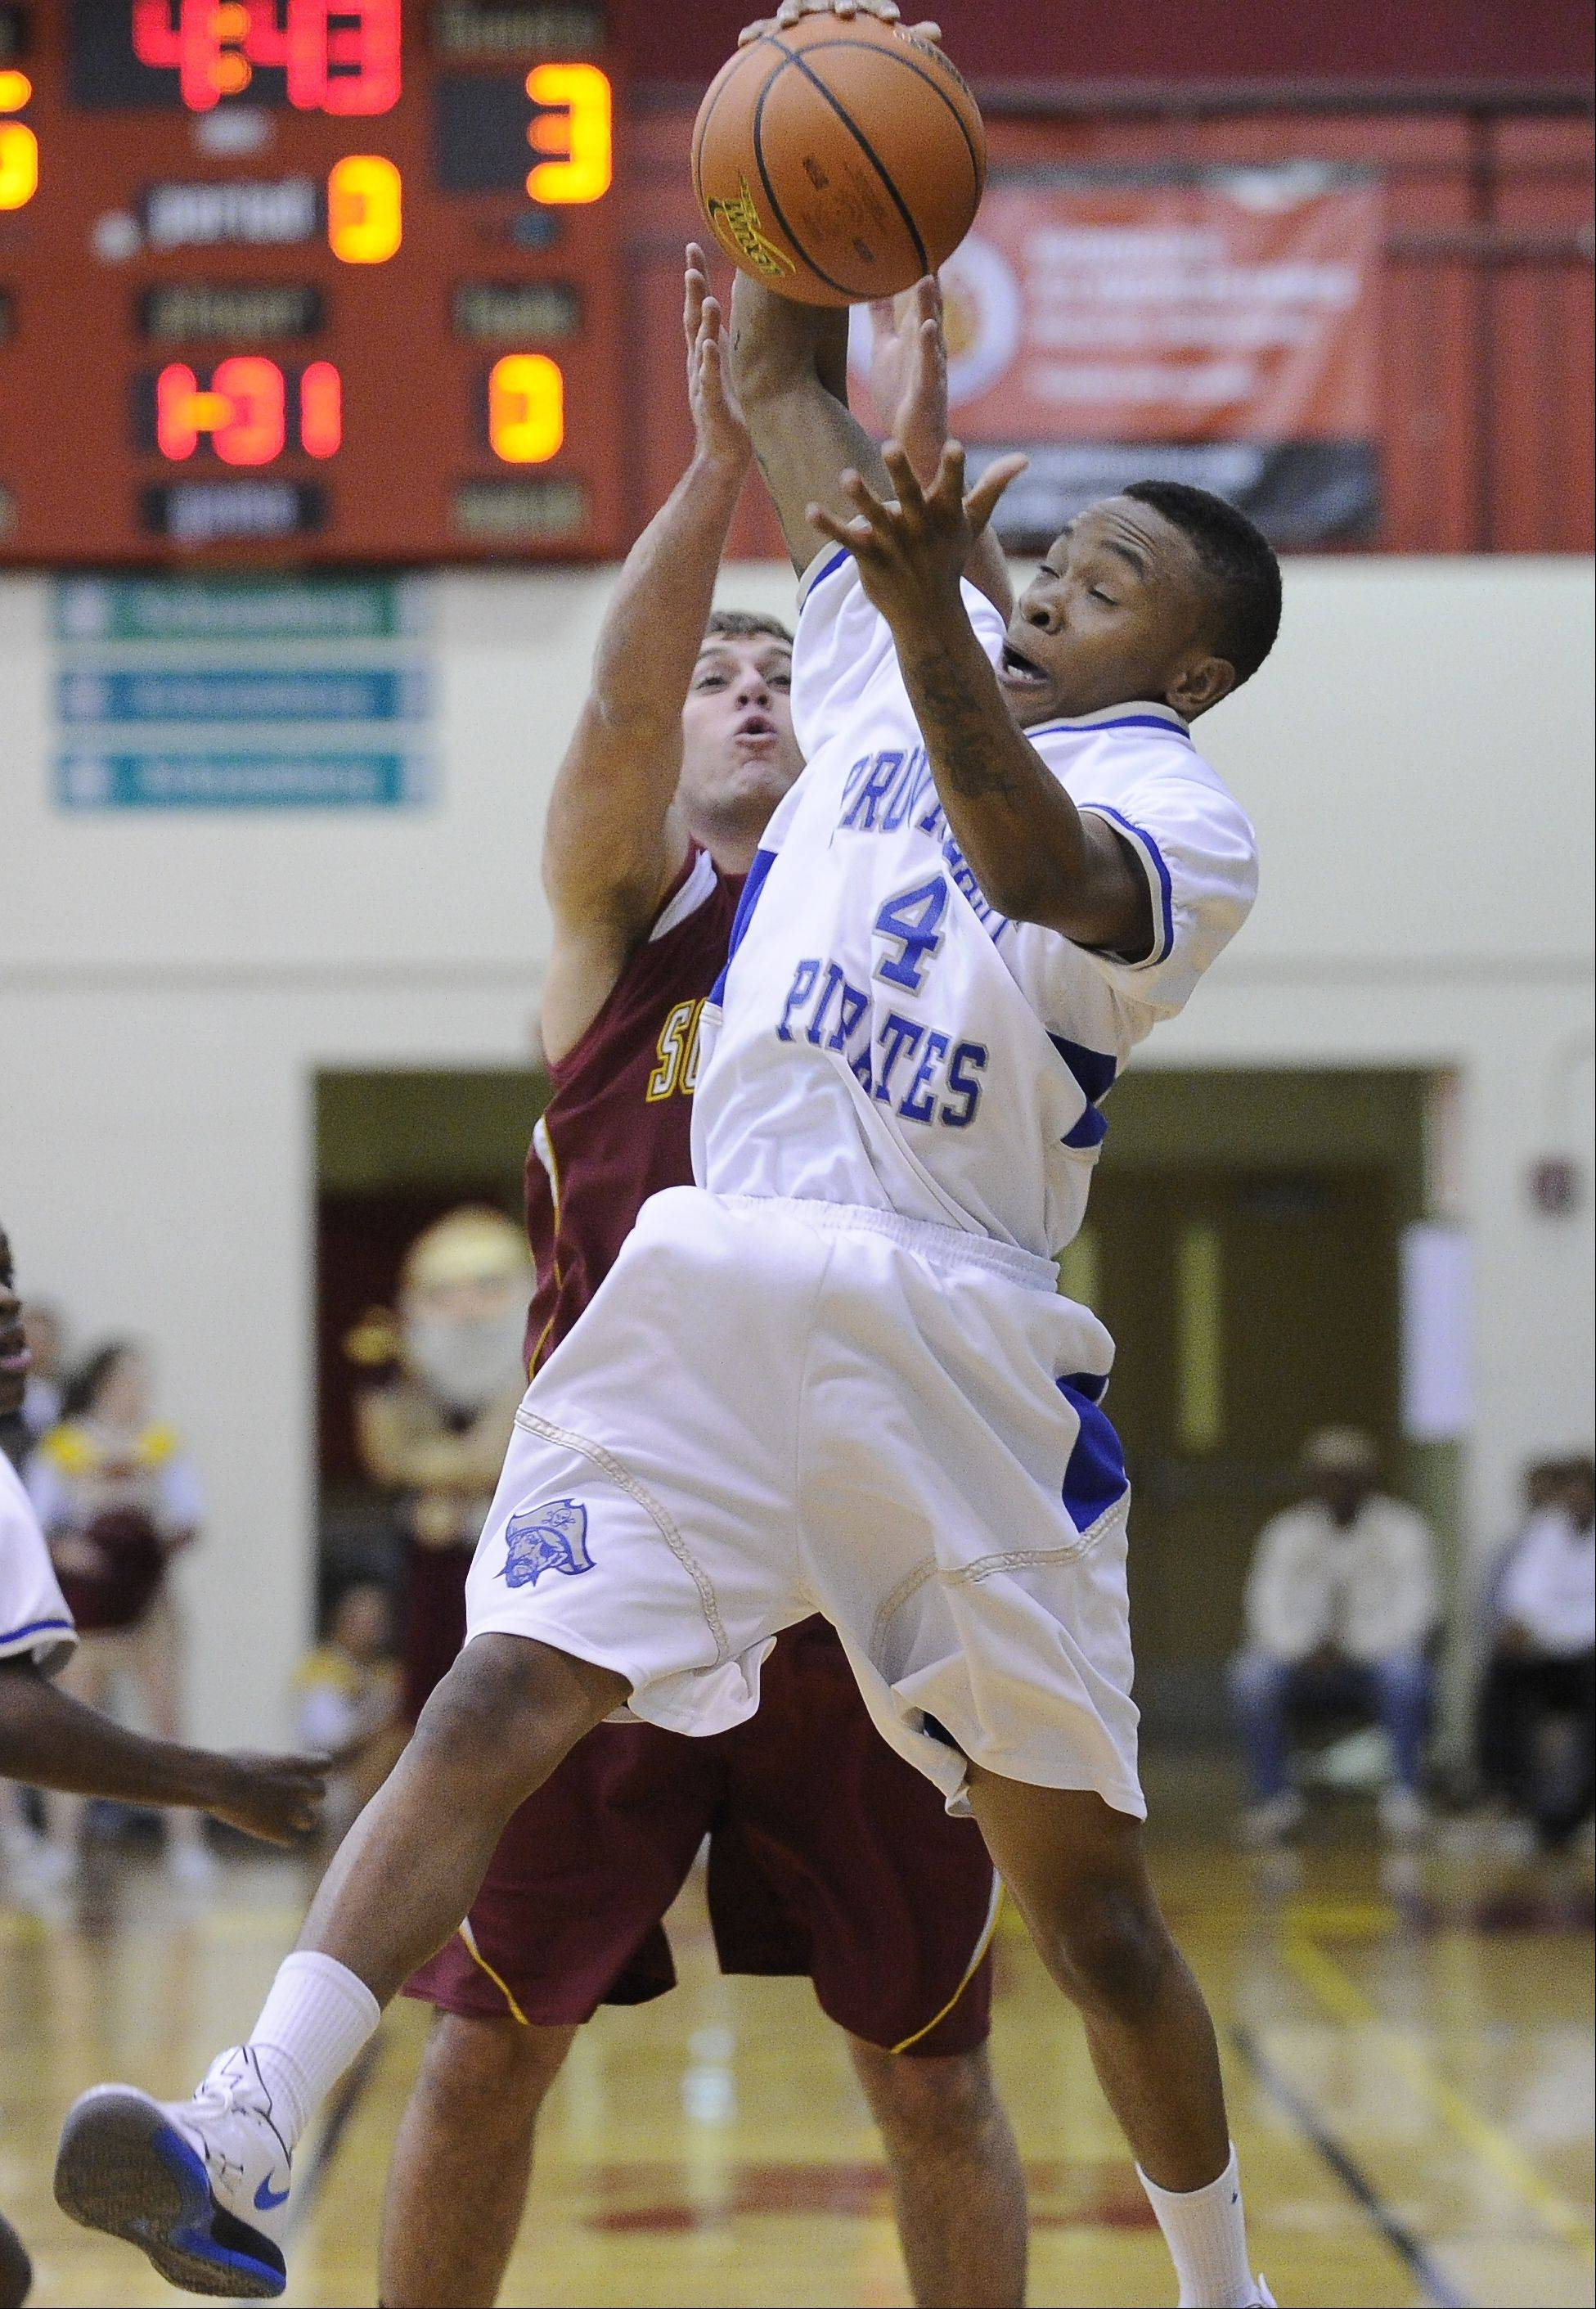 Guard Paris Burns has led unbeaten Proviso East to the Class 4A semifinals in Peoria.